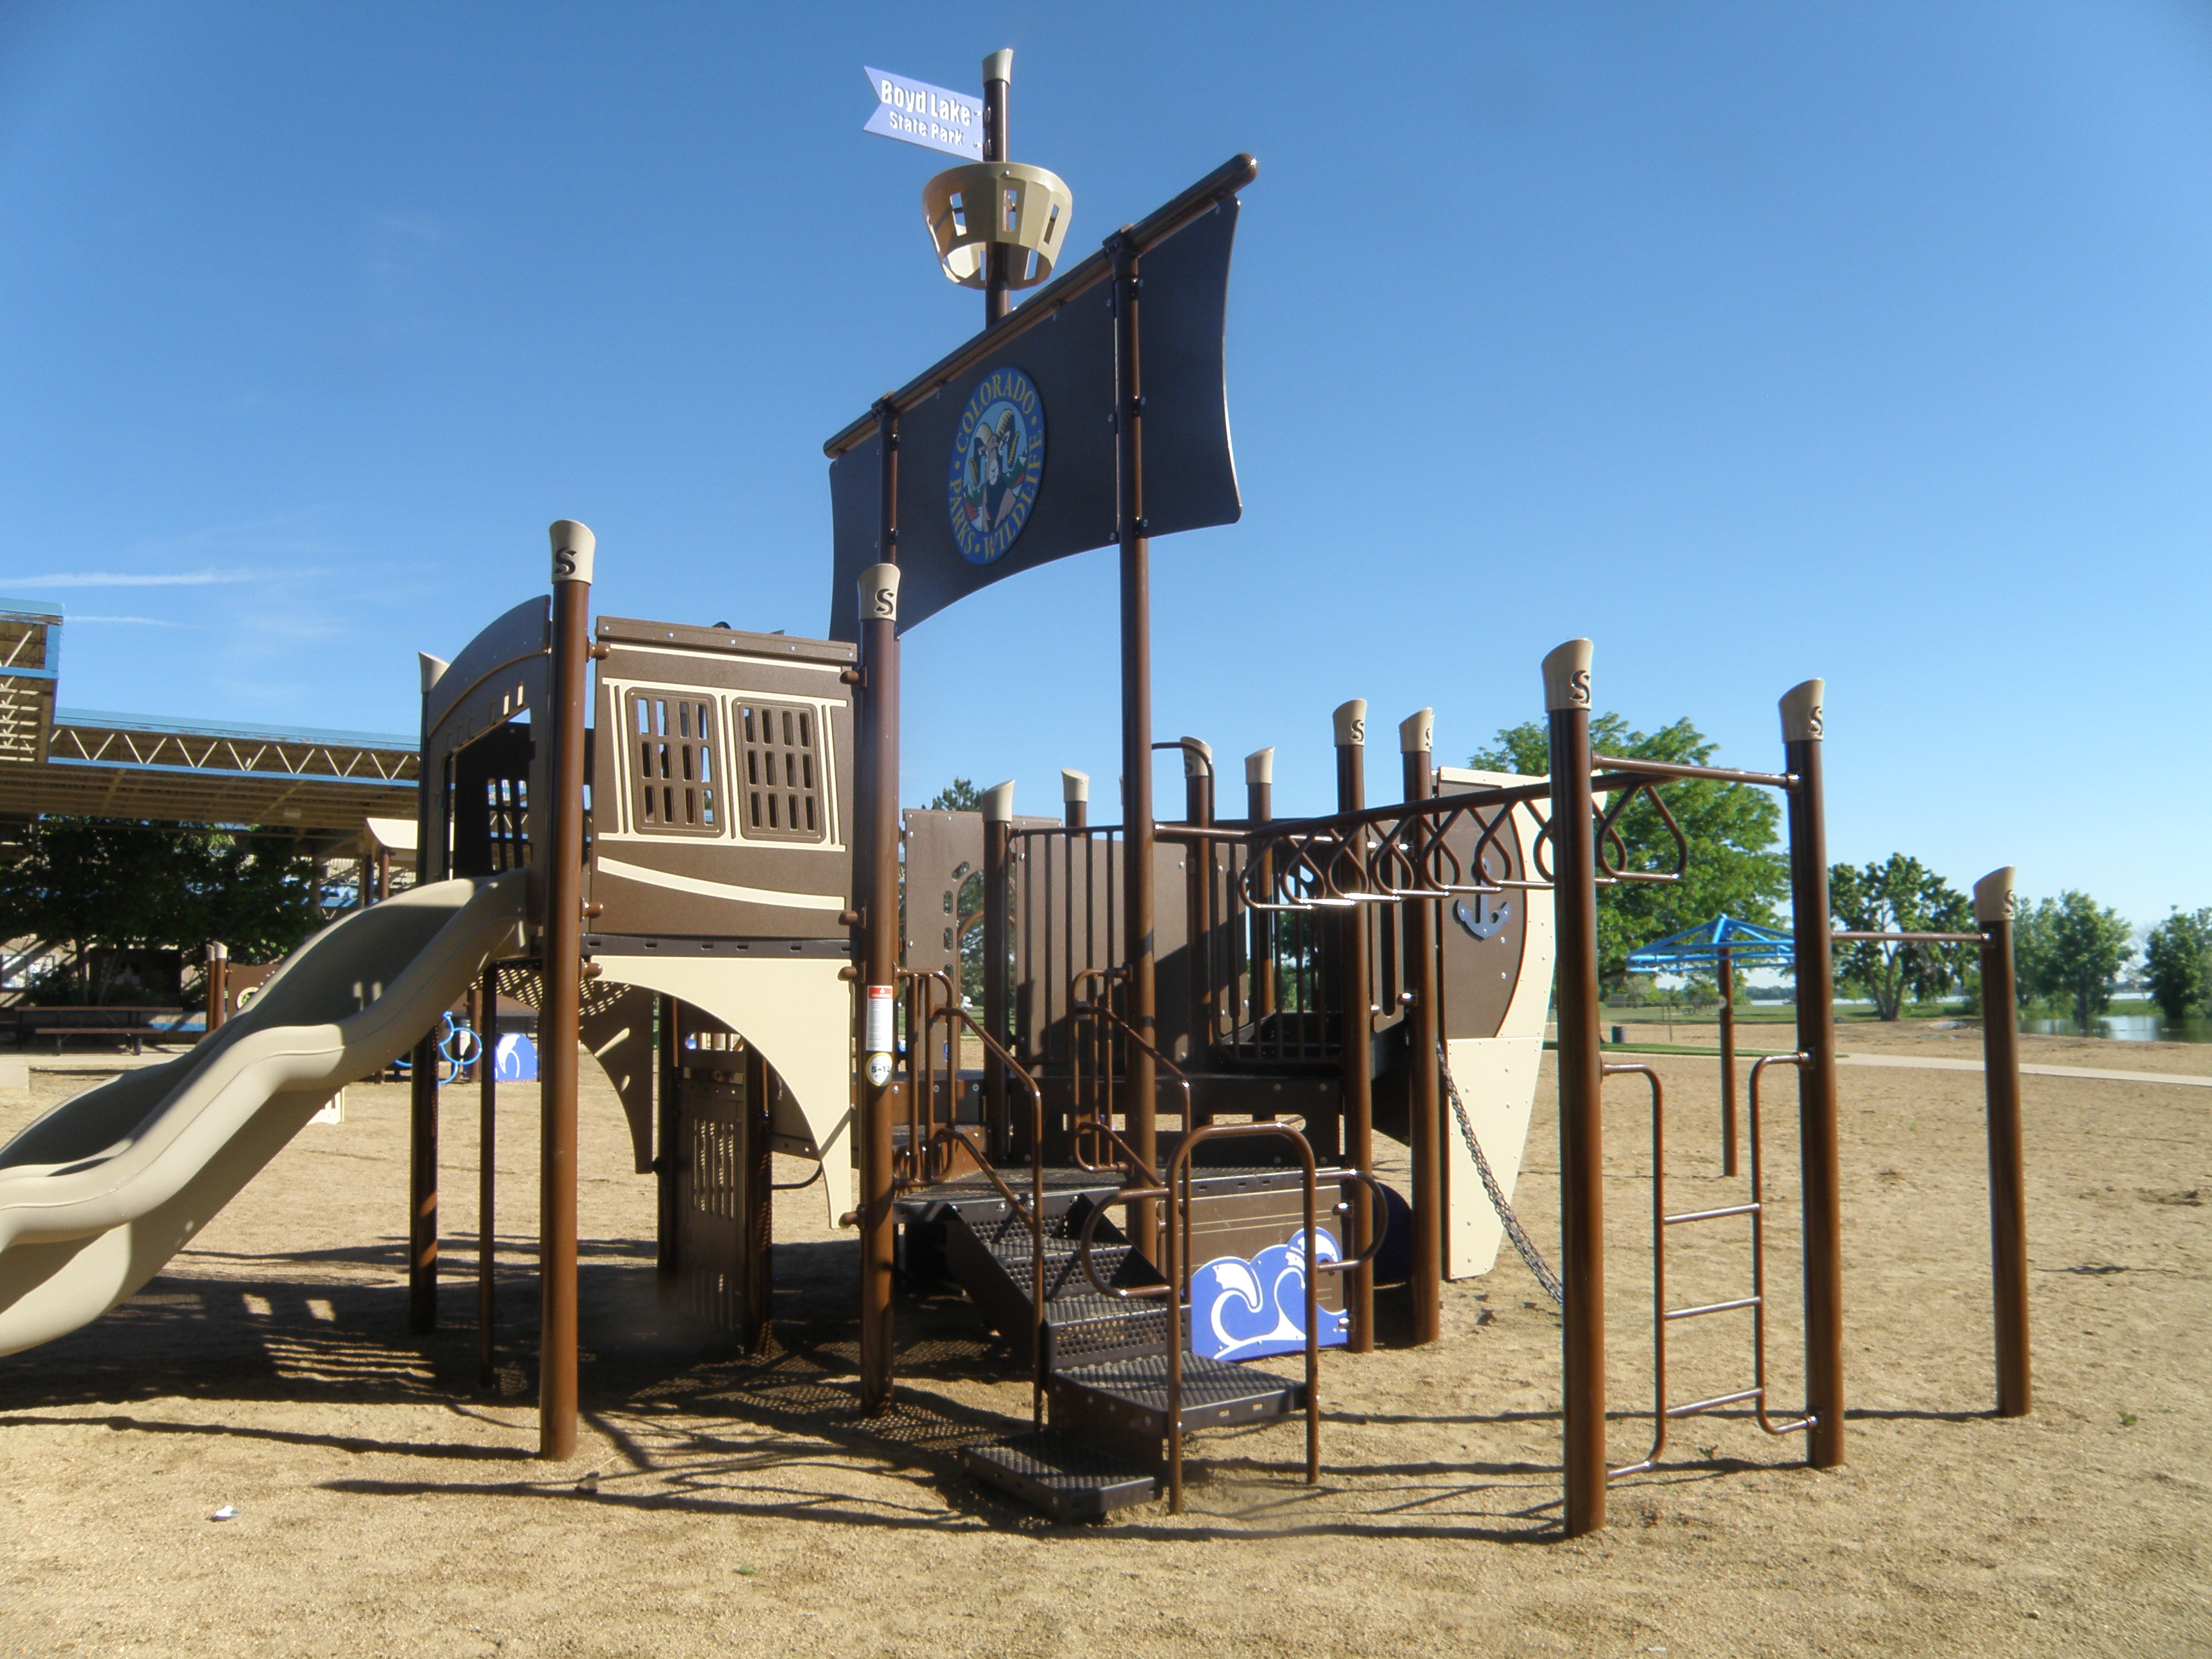 Playground equipment at the park